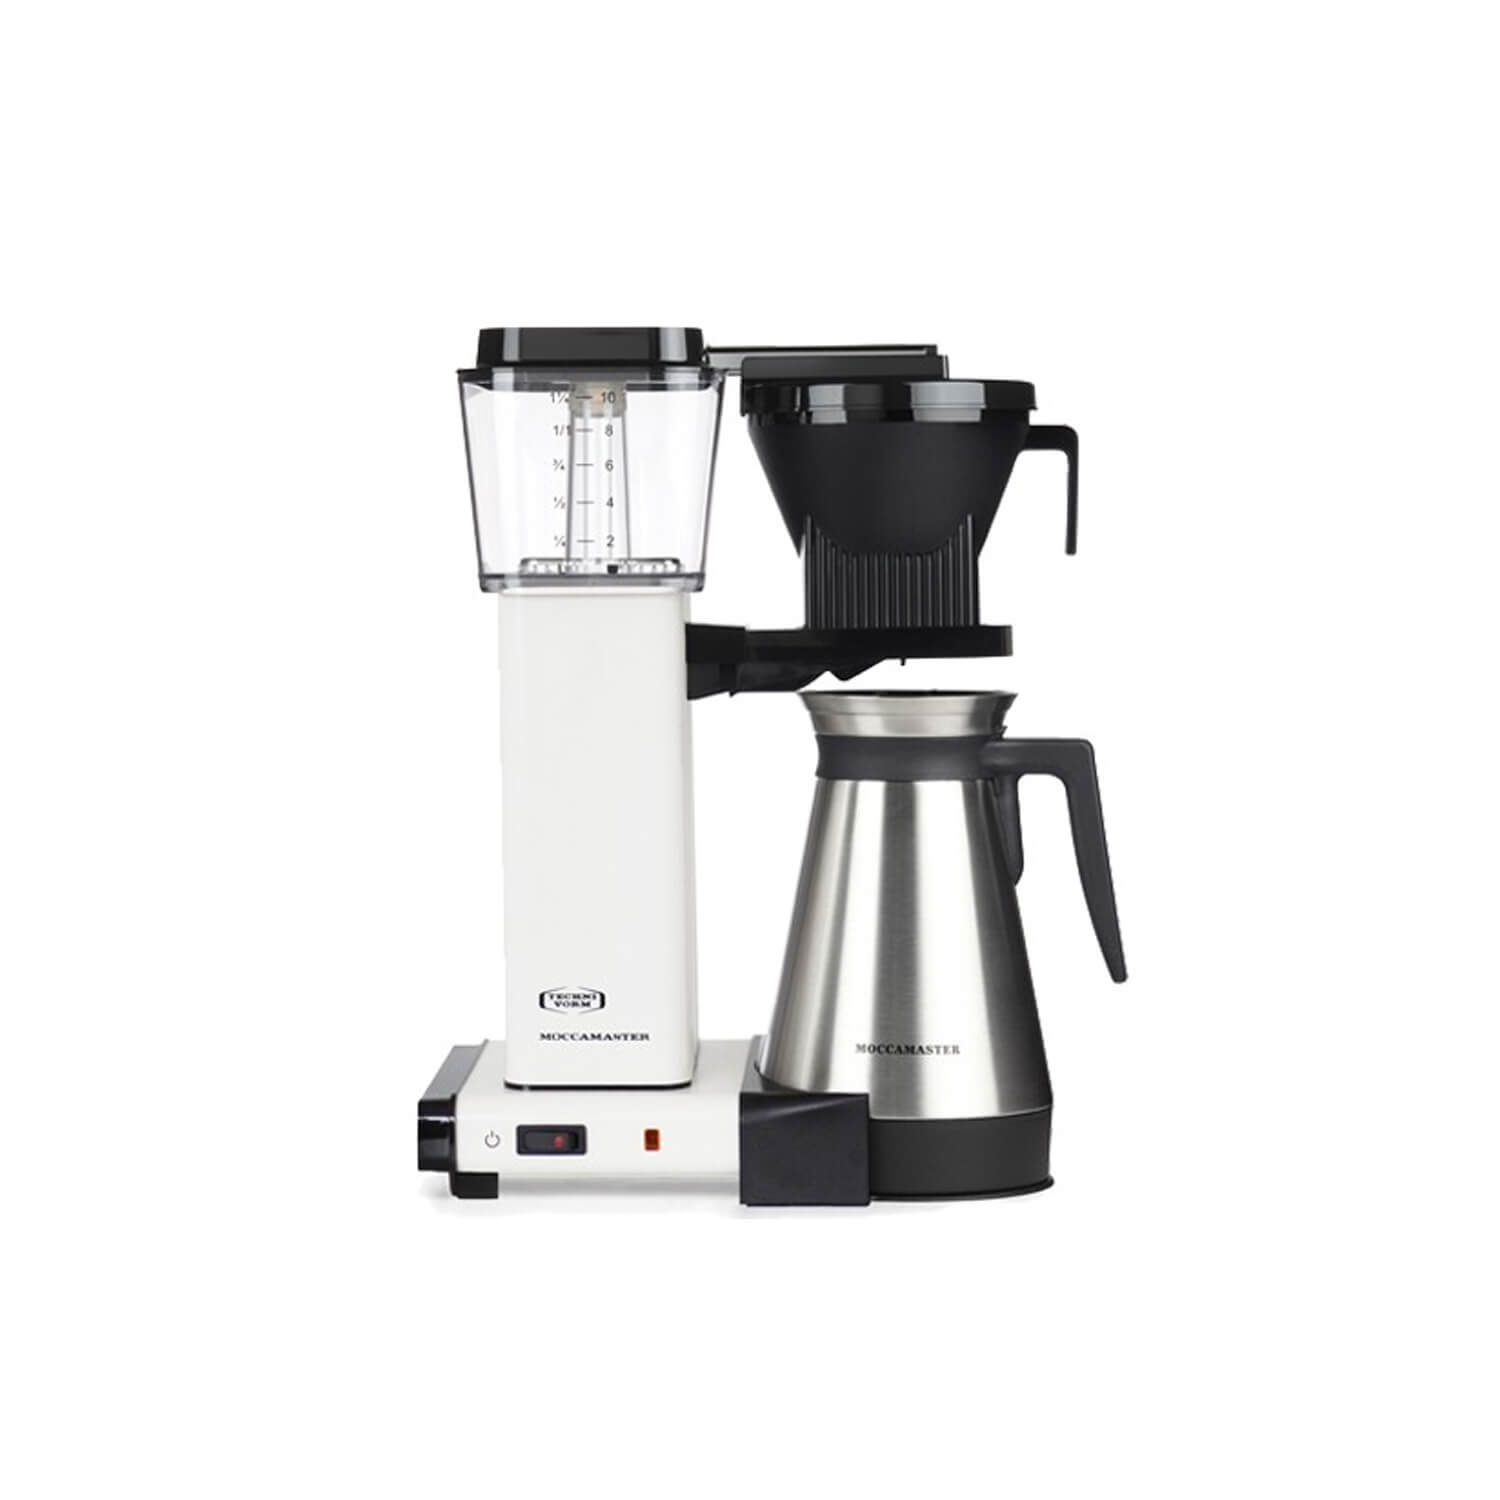 Moccamaster - koffiezetter - KBGT 741 - Thermos - Cream